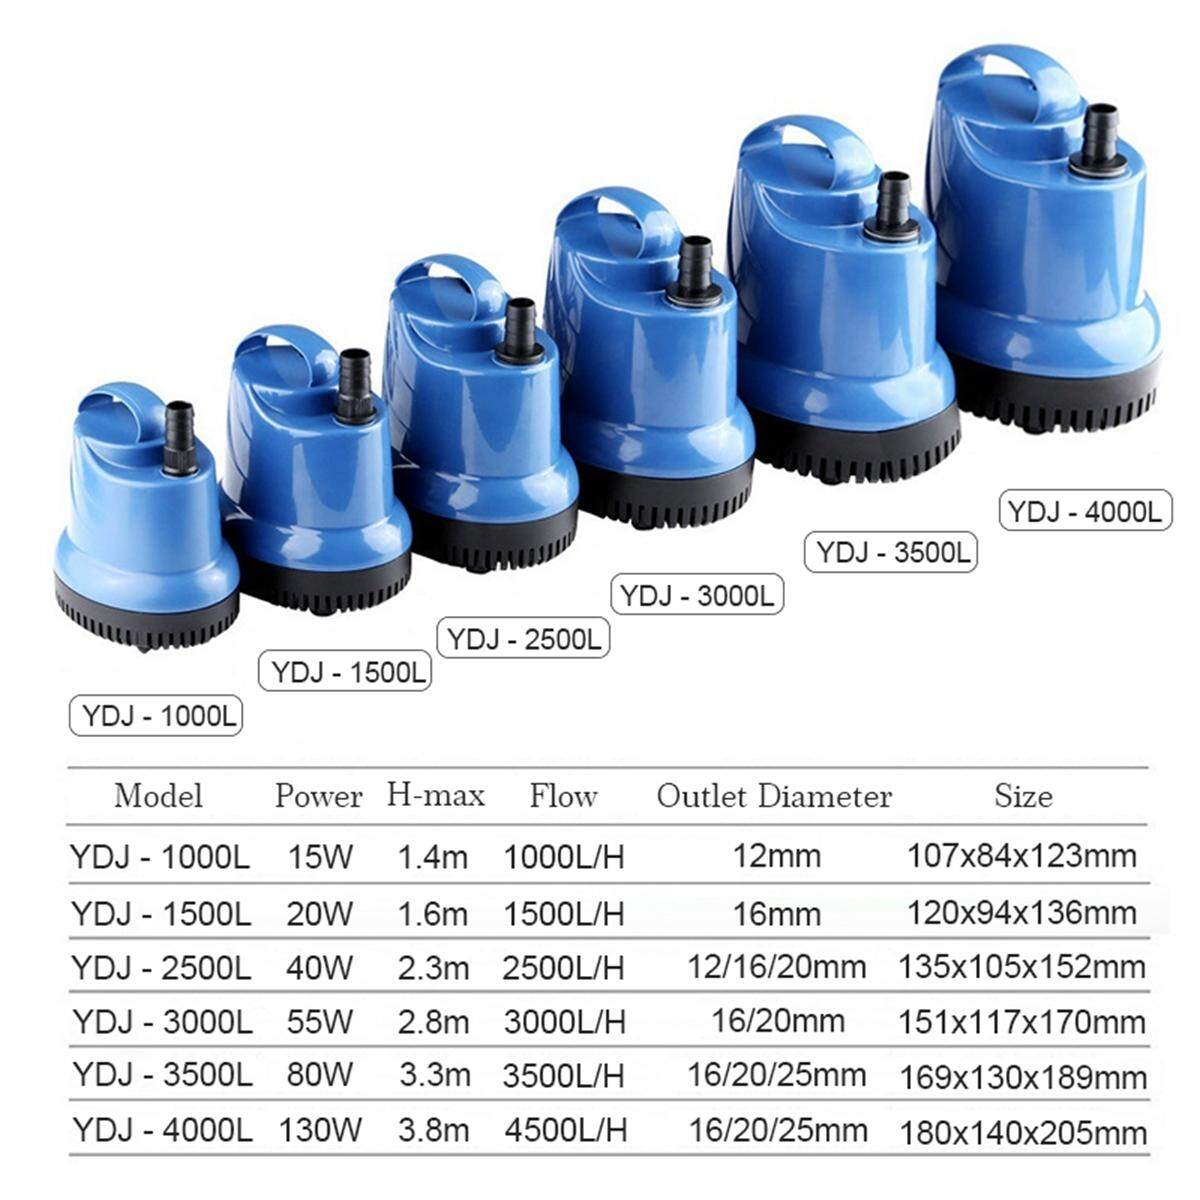 【free Shipping + Super Deal + Limited Offer】15w/20w/40w/55w/80w/130w Ultra Quiet Universal Submersible Water Pump By Teamtop.